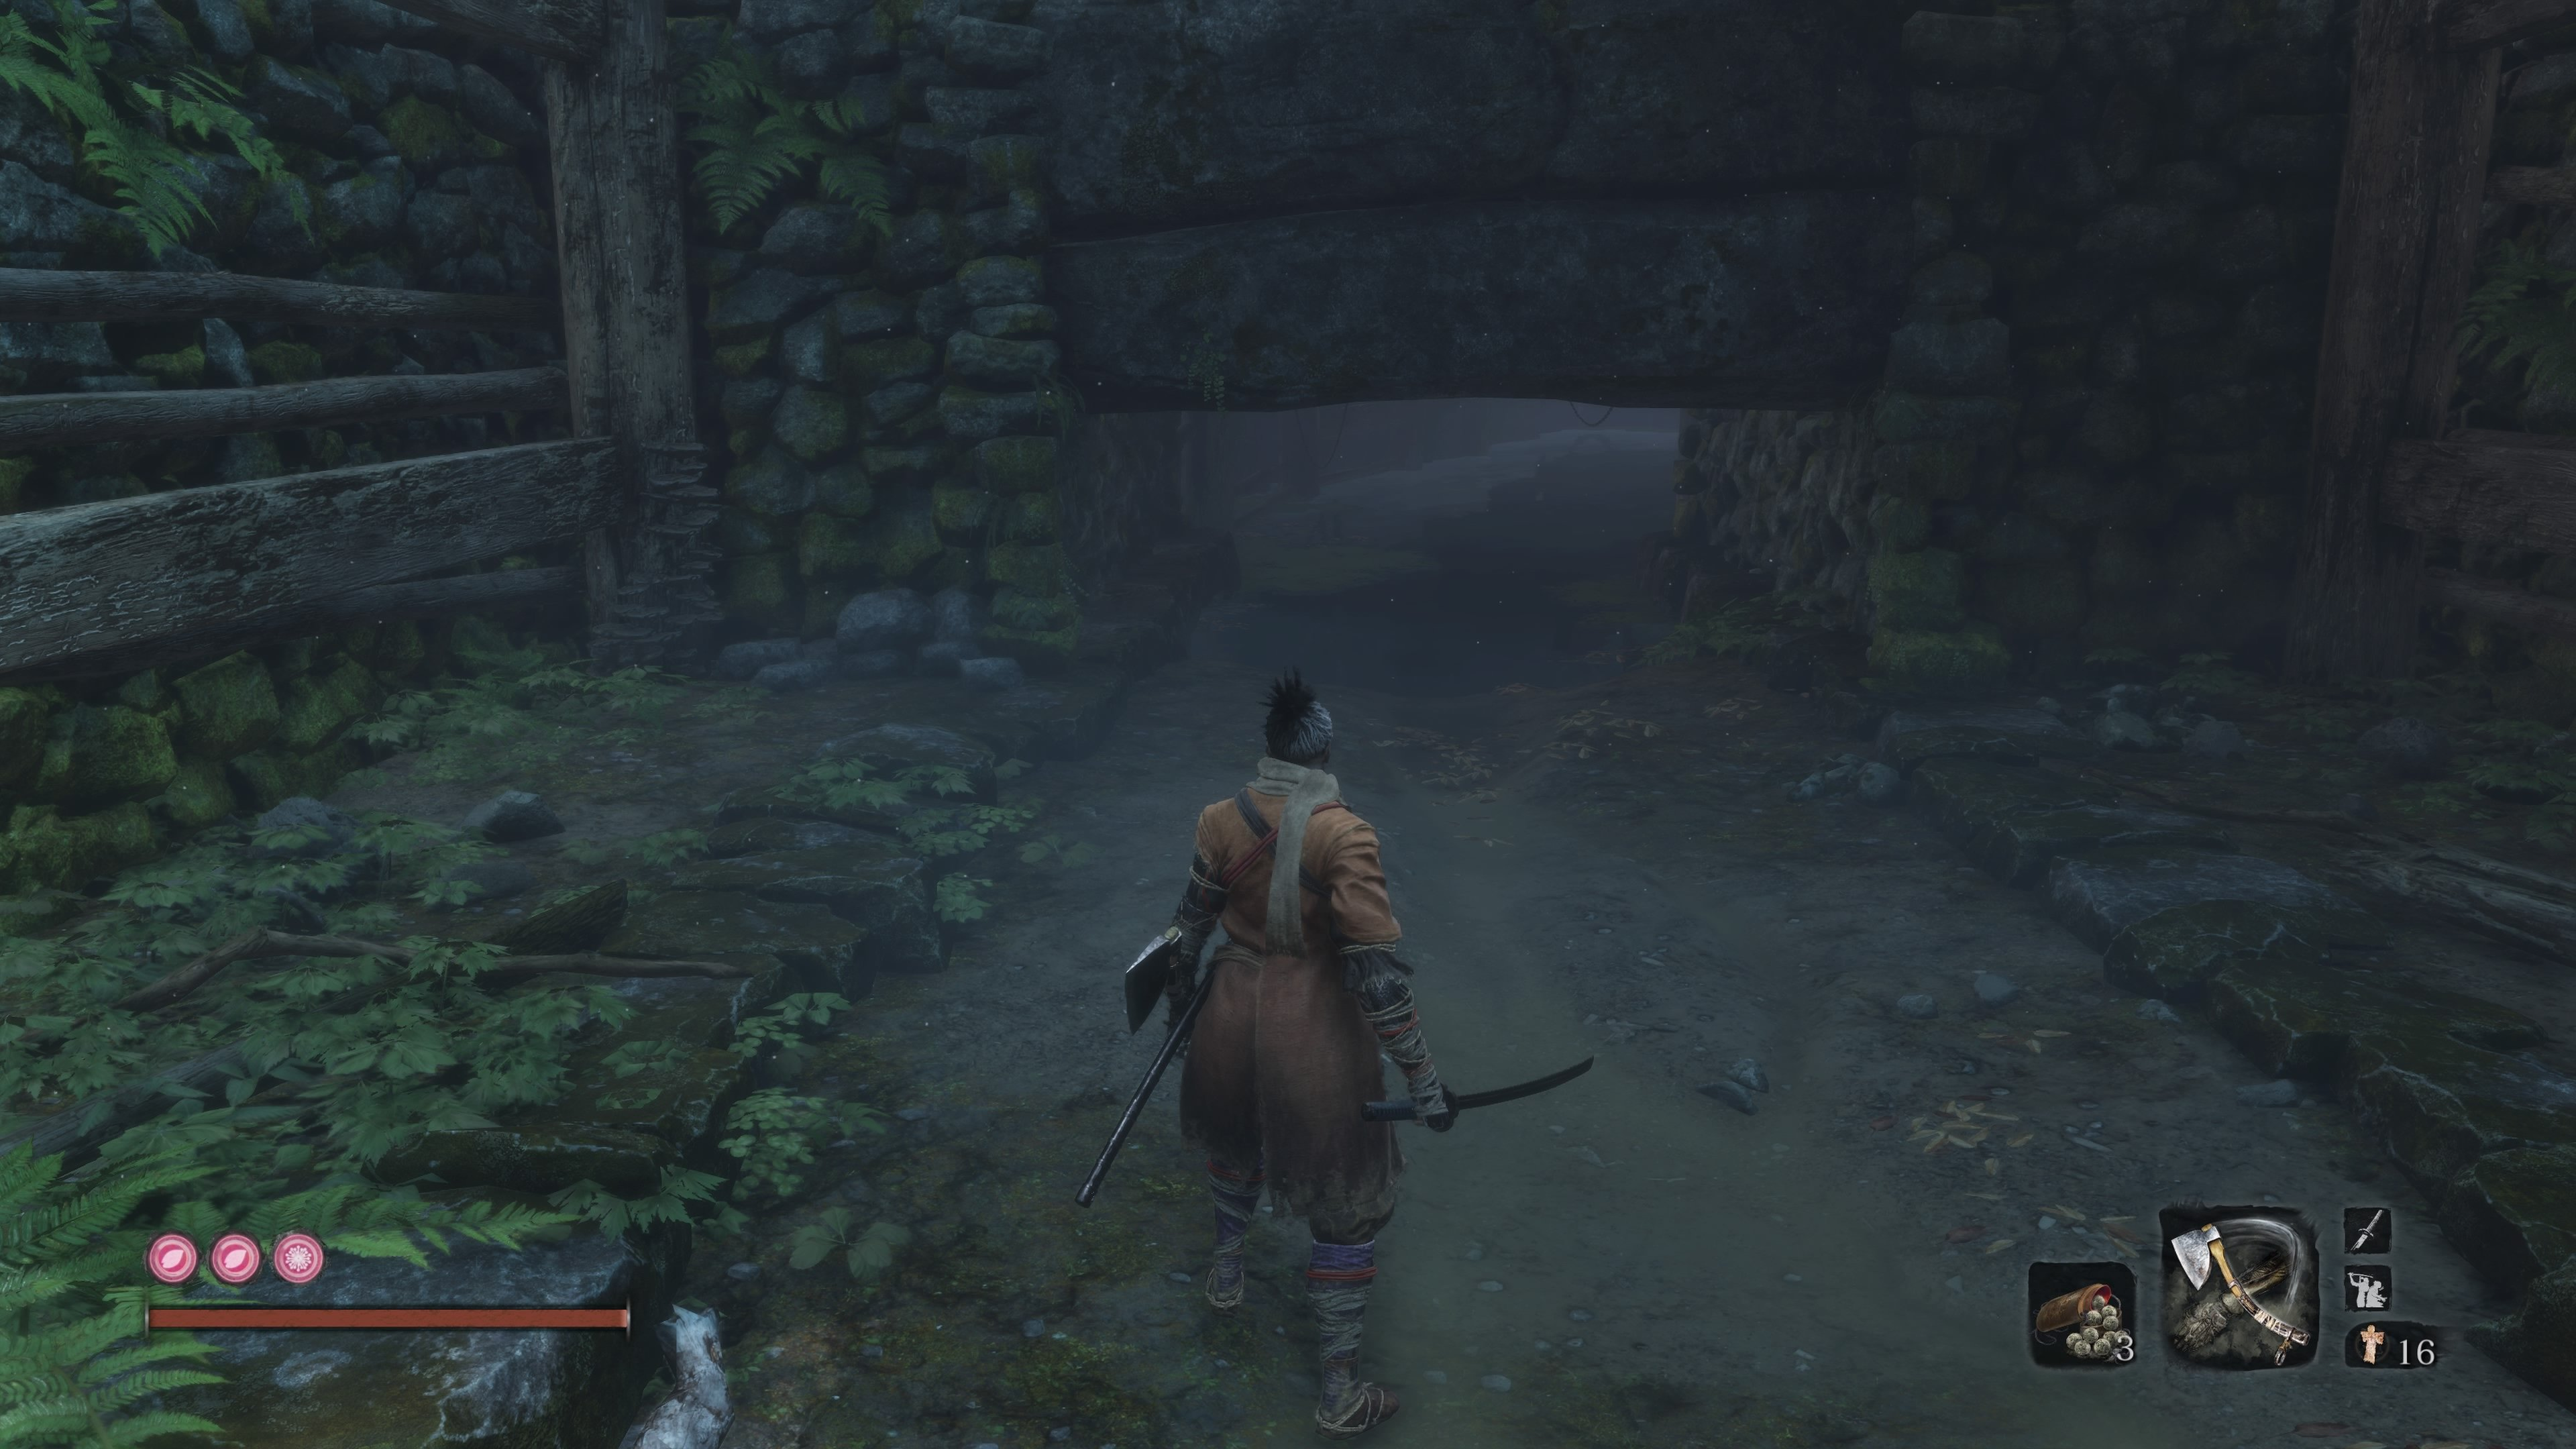 Where to dive underwater in Sekiro - Ashina Castle